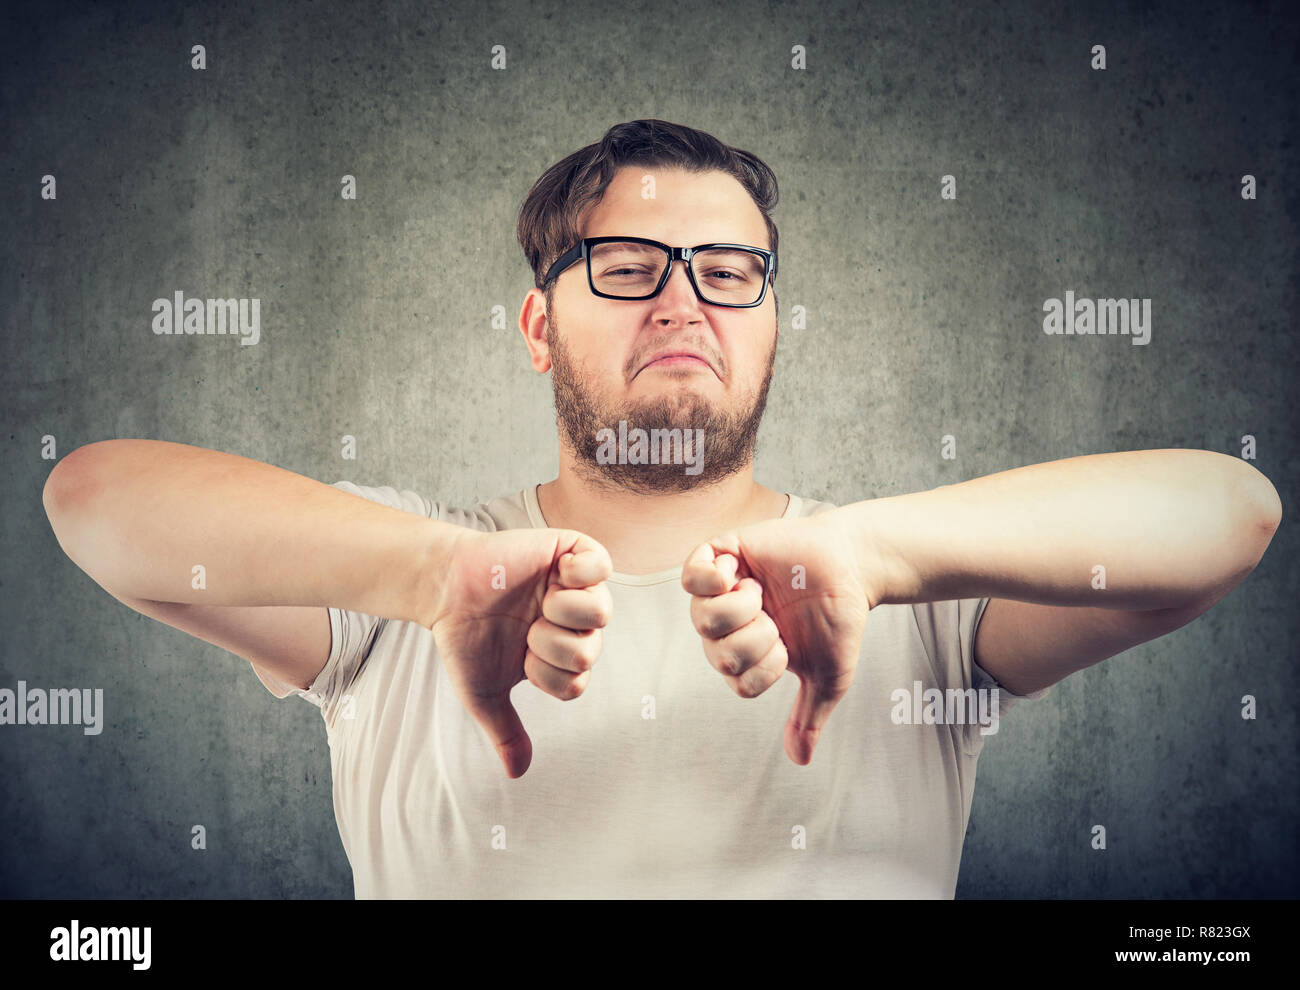 Young bearded man in glasses holding thumbs down showing dislike on gray background - Stock Image